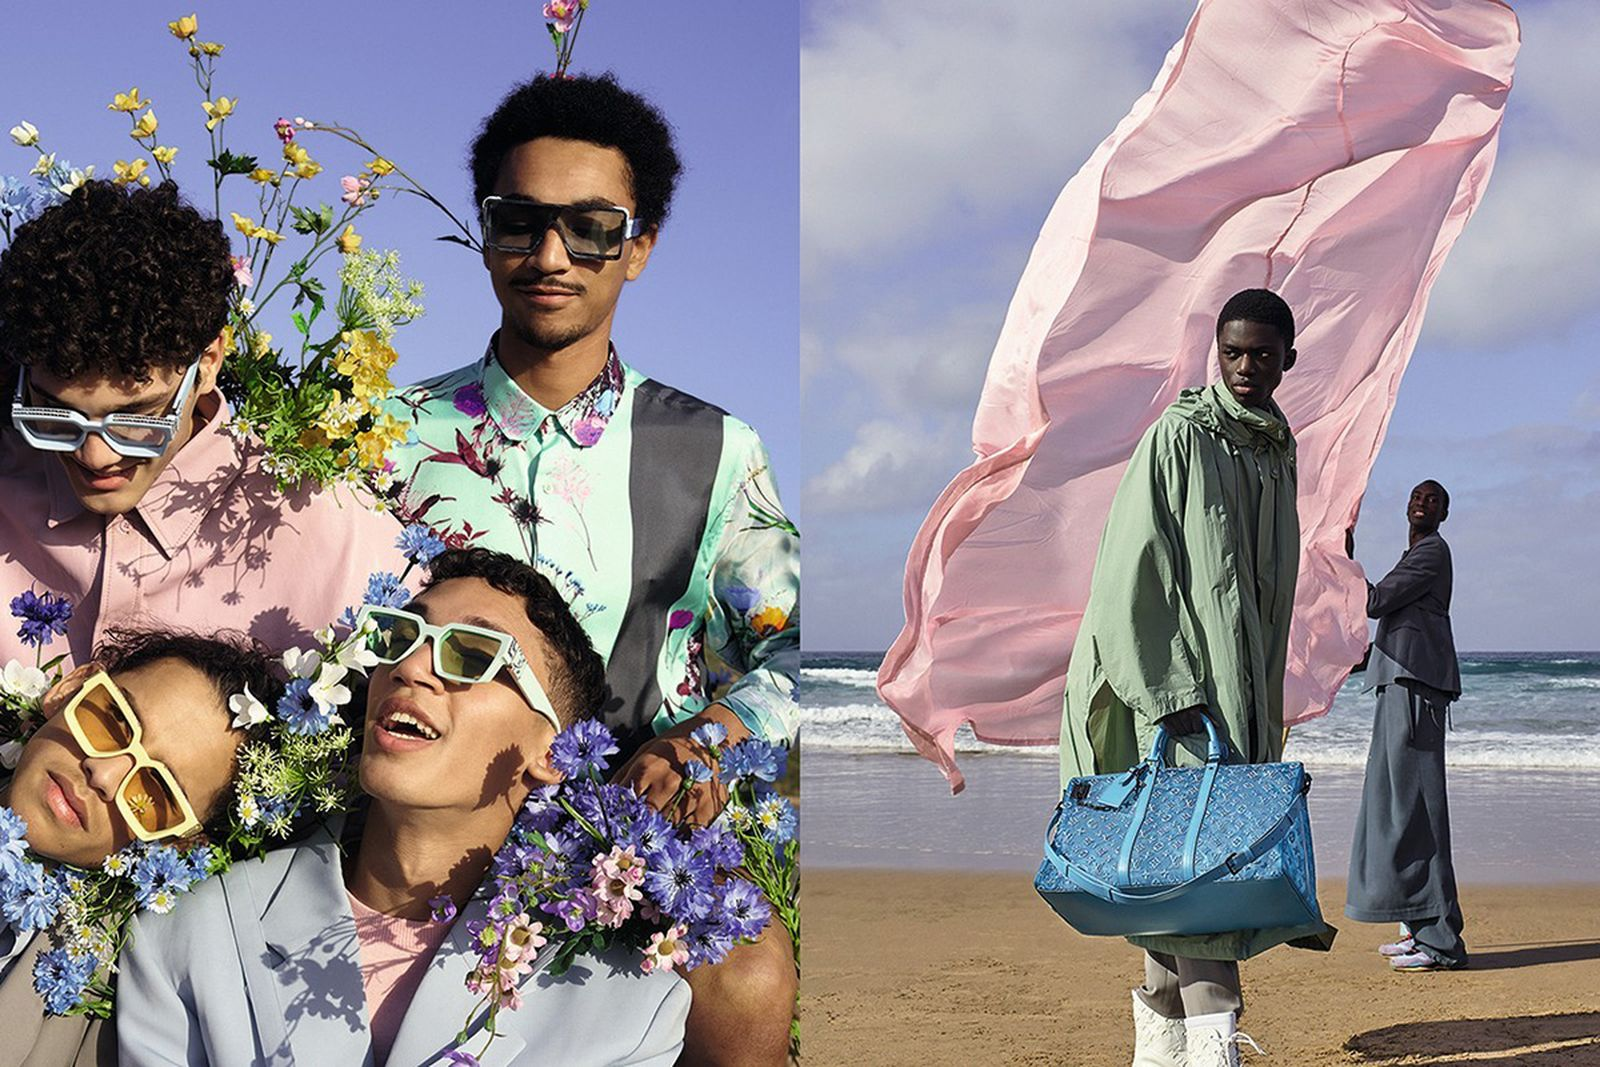 Louis Vuitton SS20 campaign